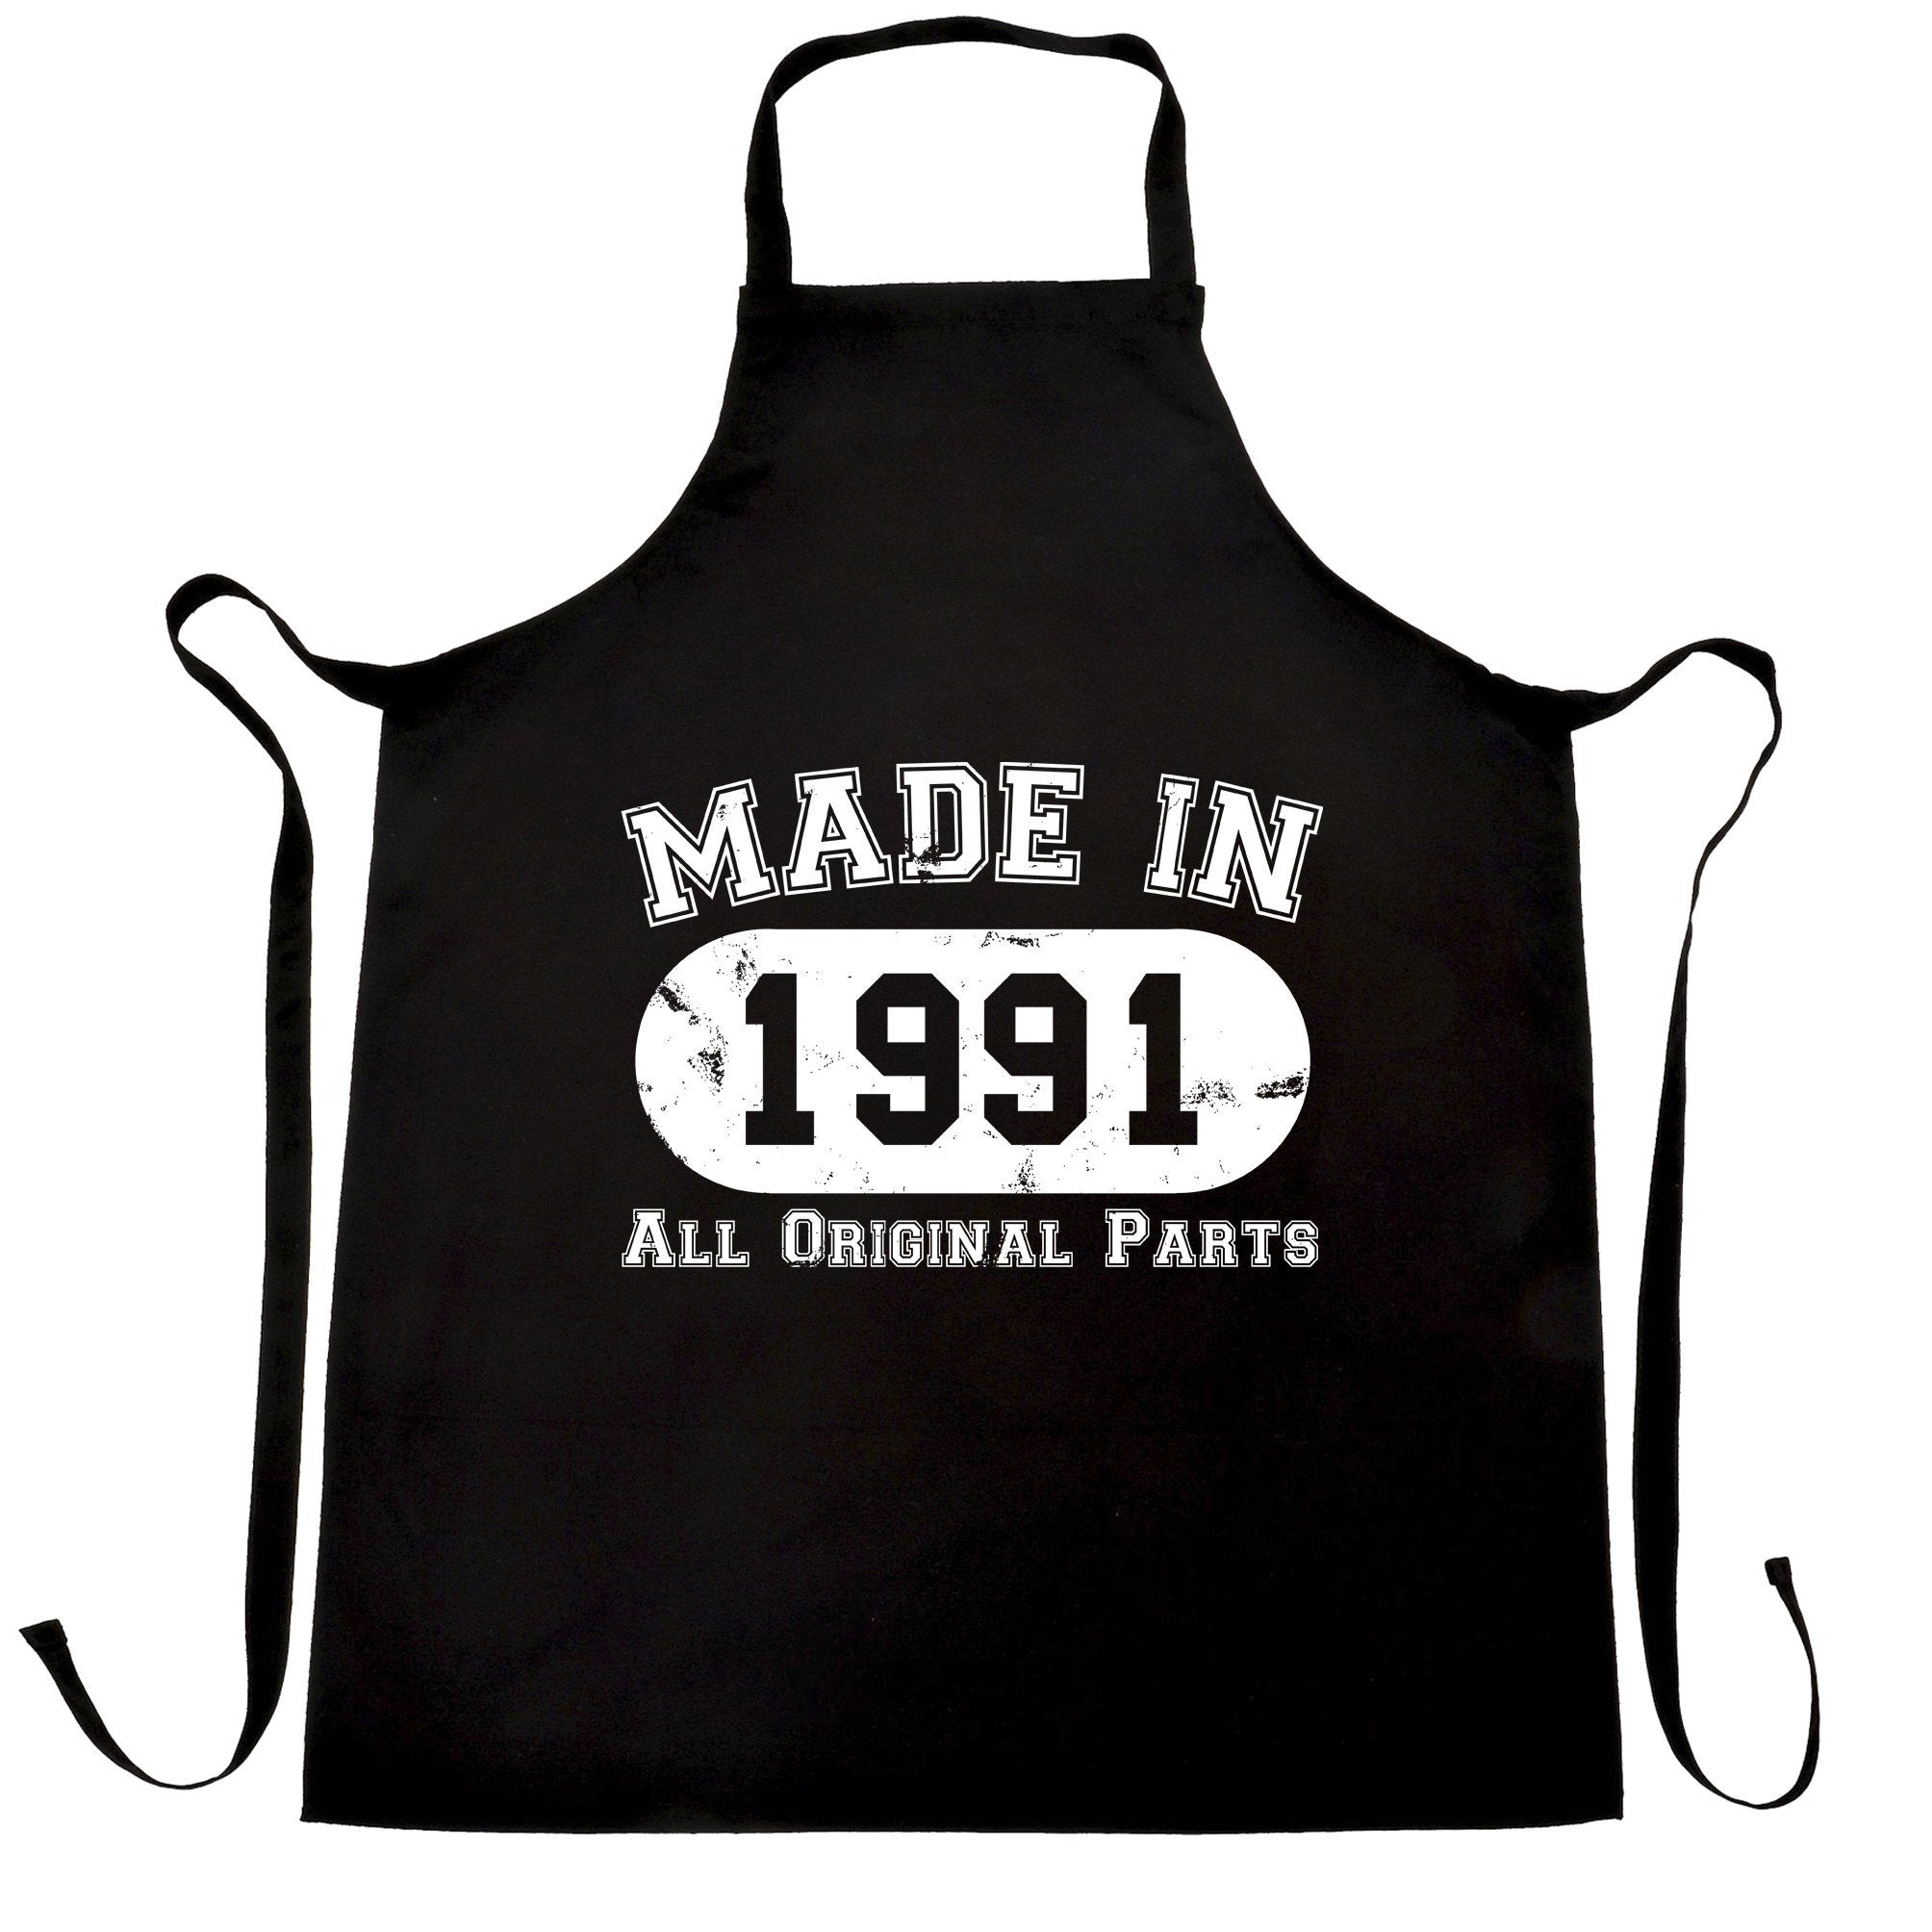 Made in 1991 All Original Parts Apron [Distressed]